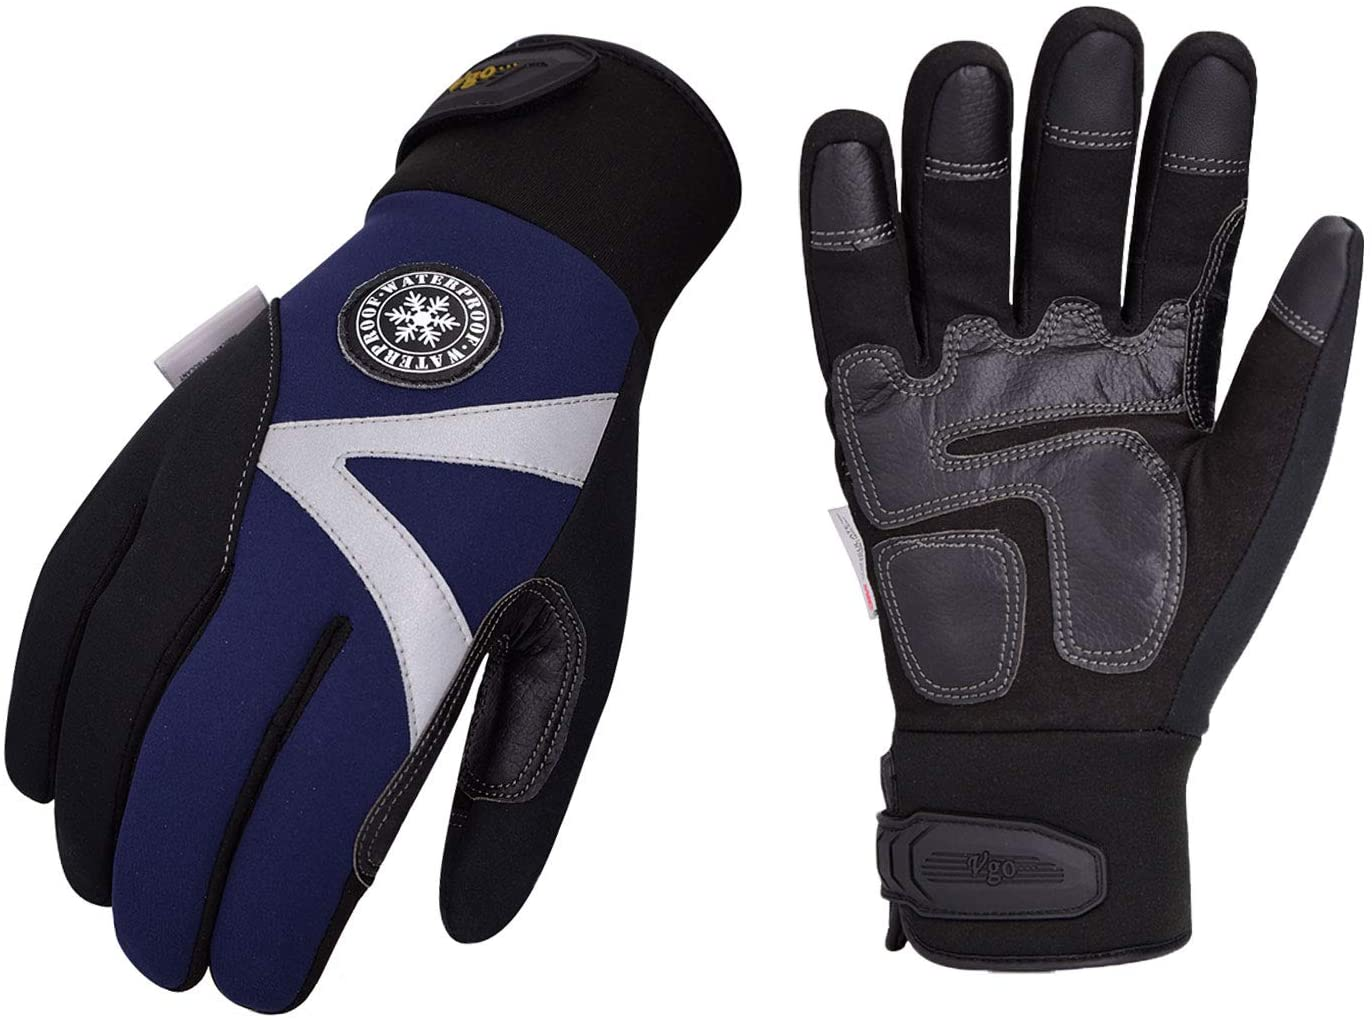 VGO Survival gloves in black, with blue and white details on front and a circle patch with a waterproof mark.